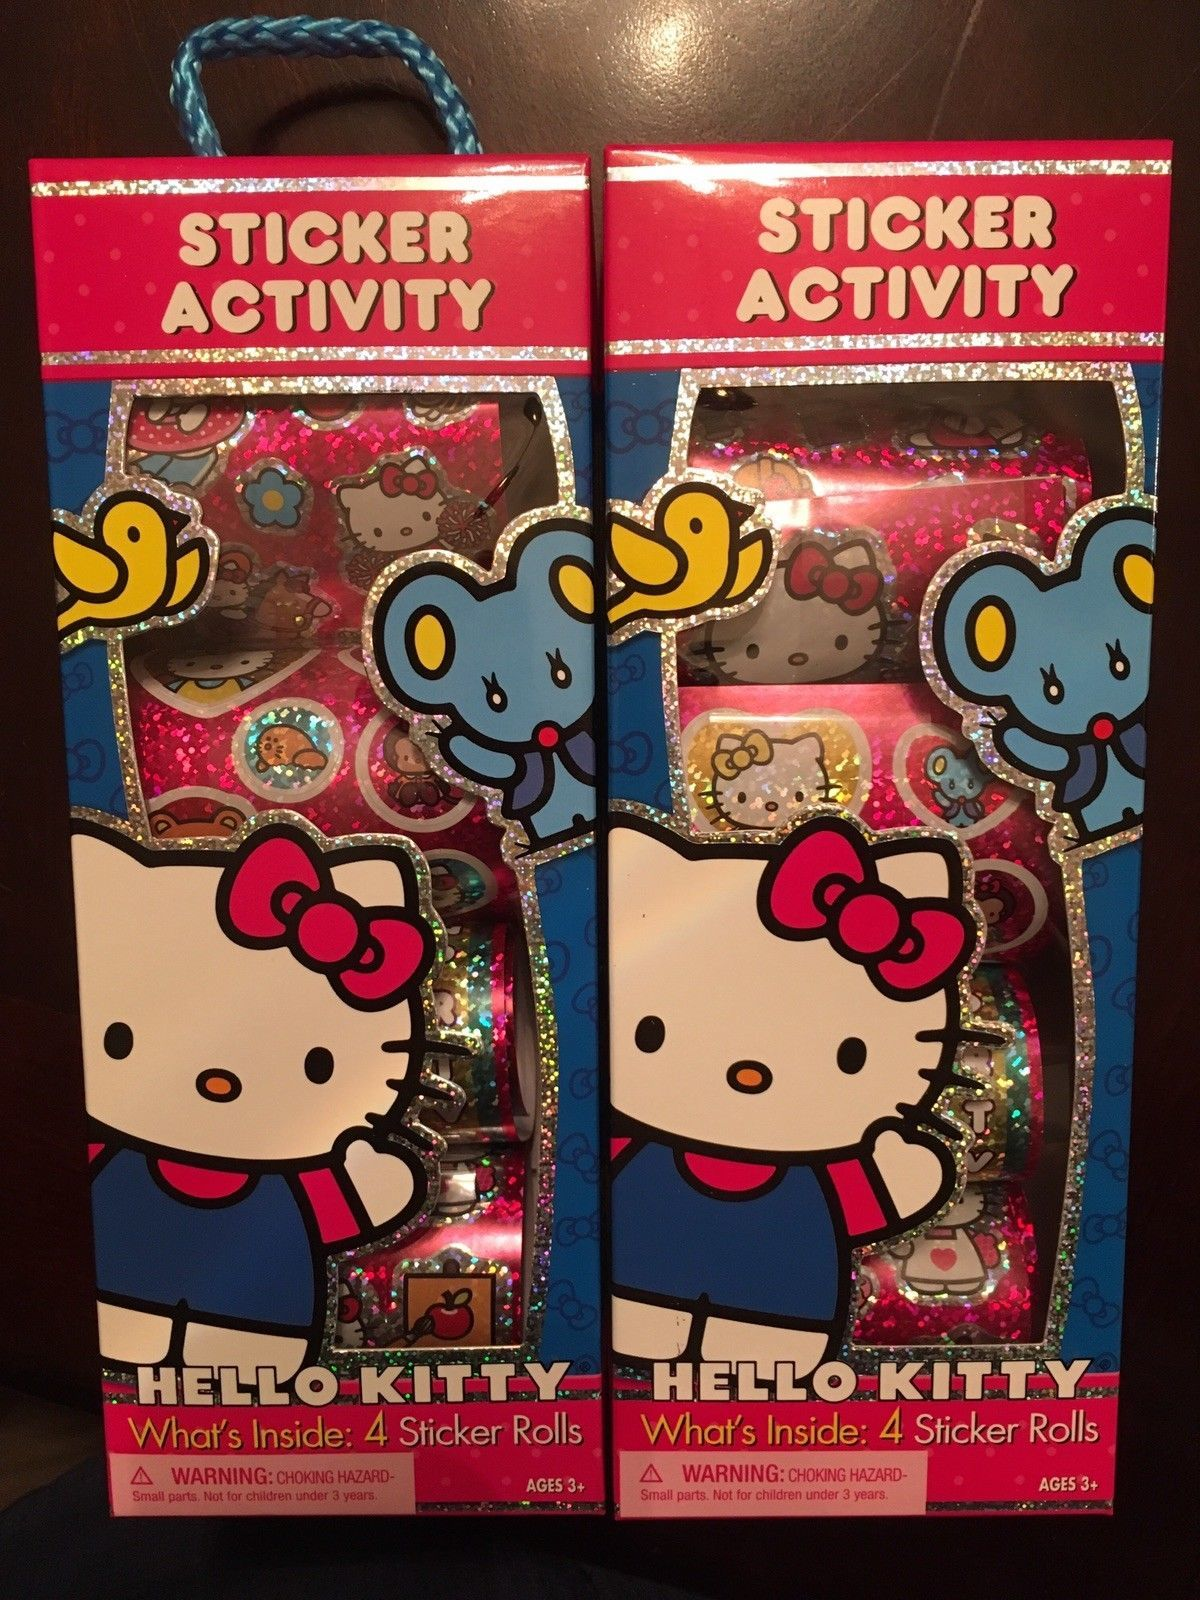 HELLO KITTY Sticker Activity Over 200 and 50 similar items